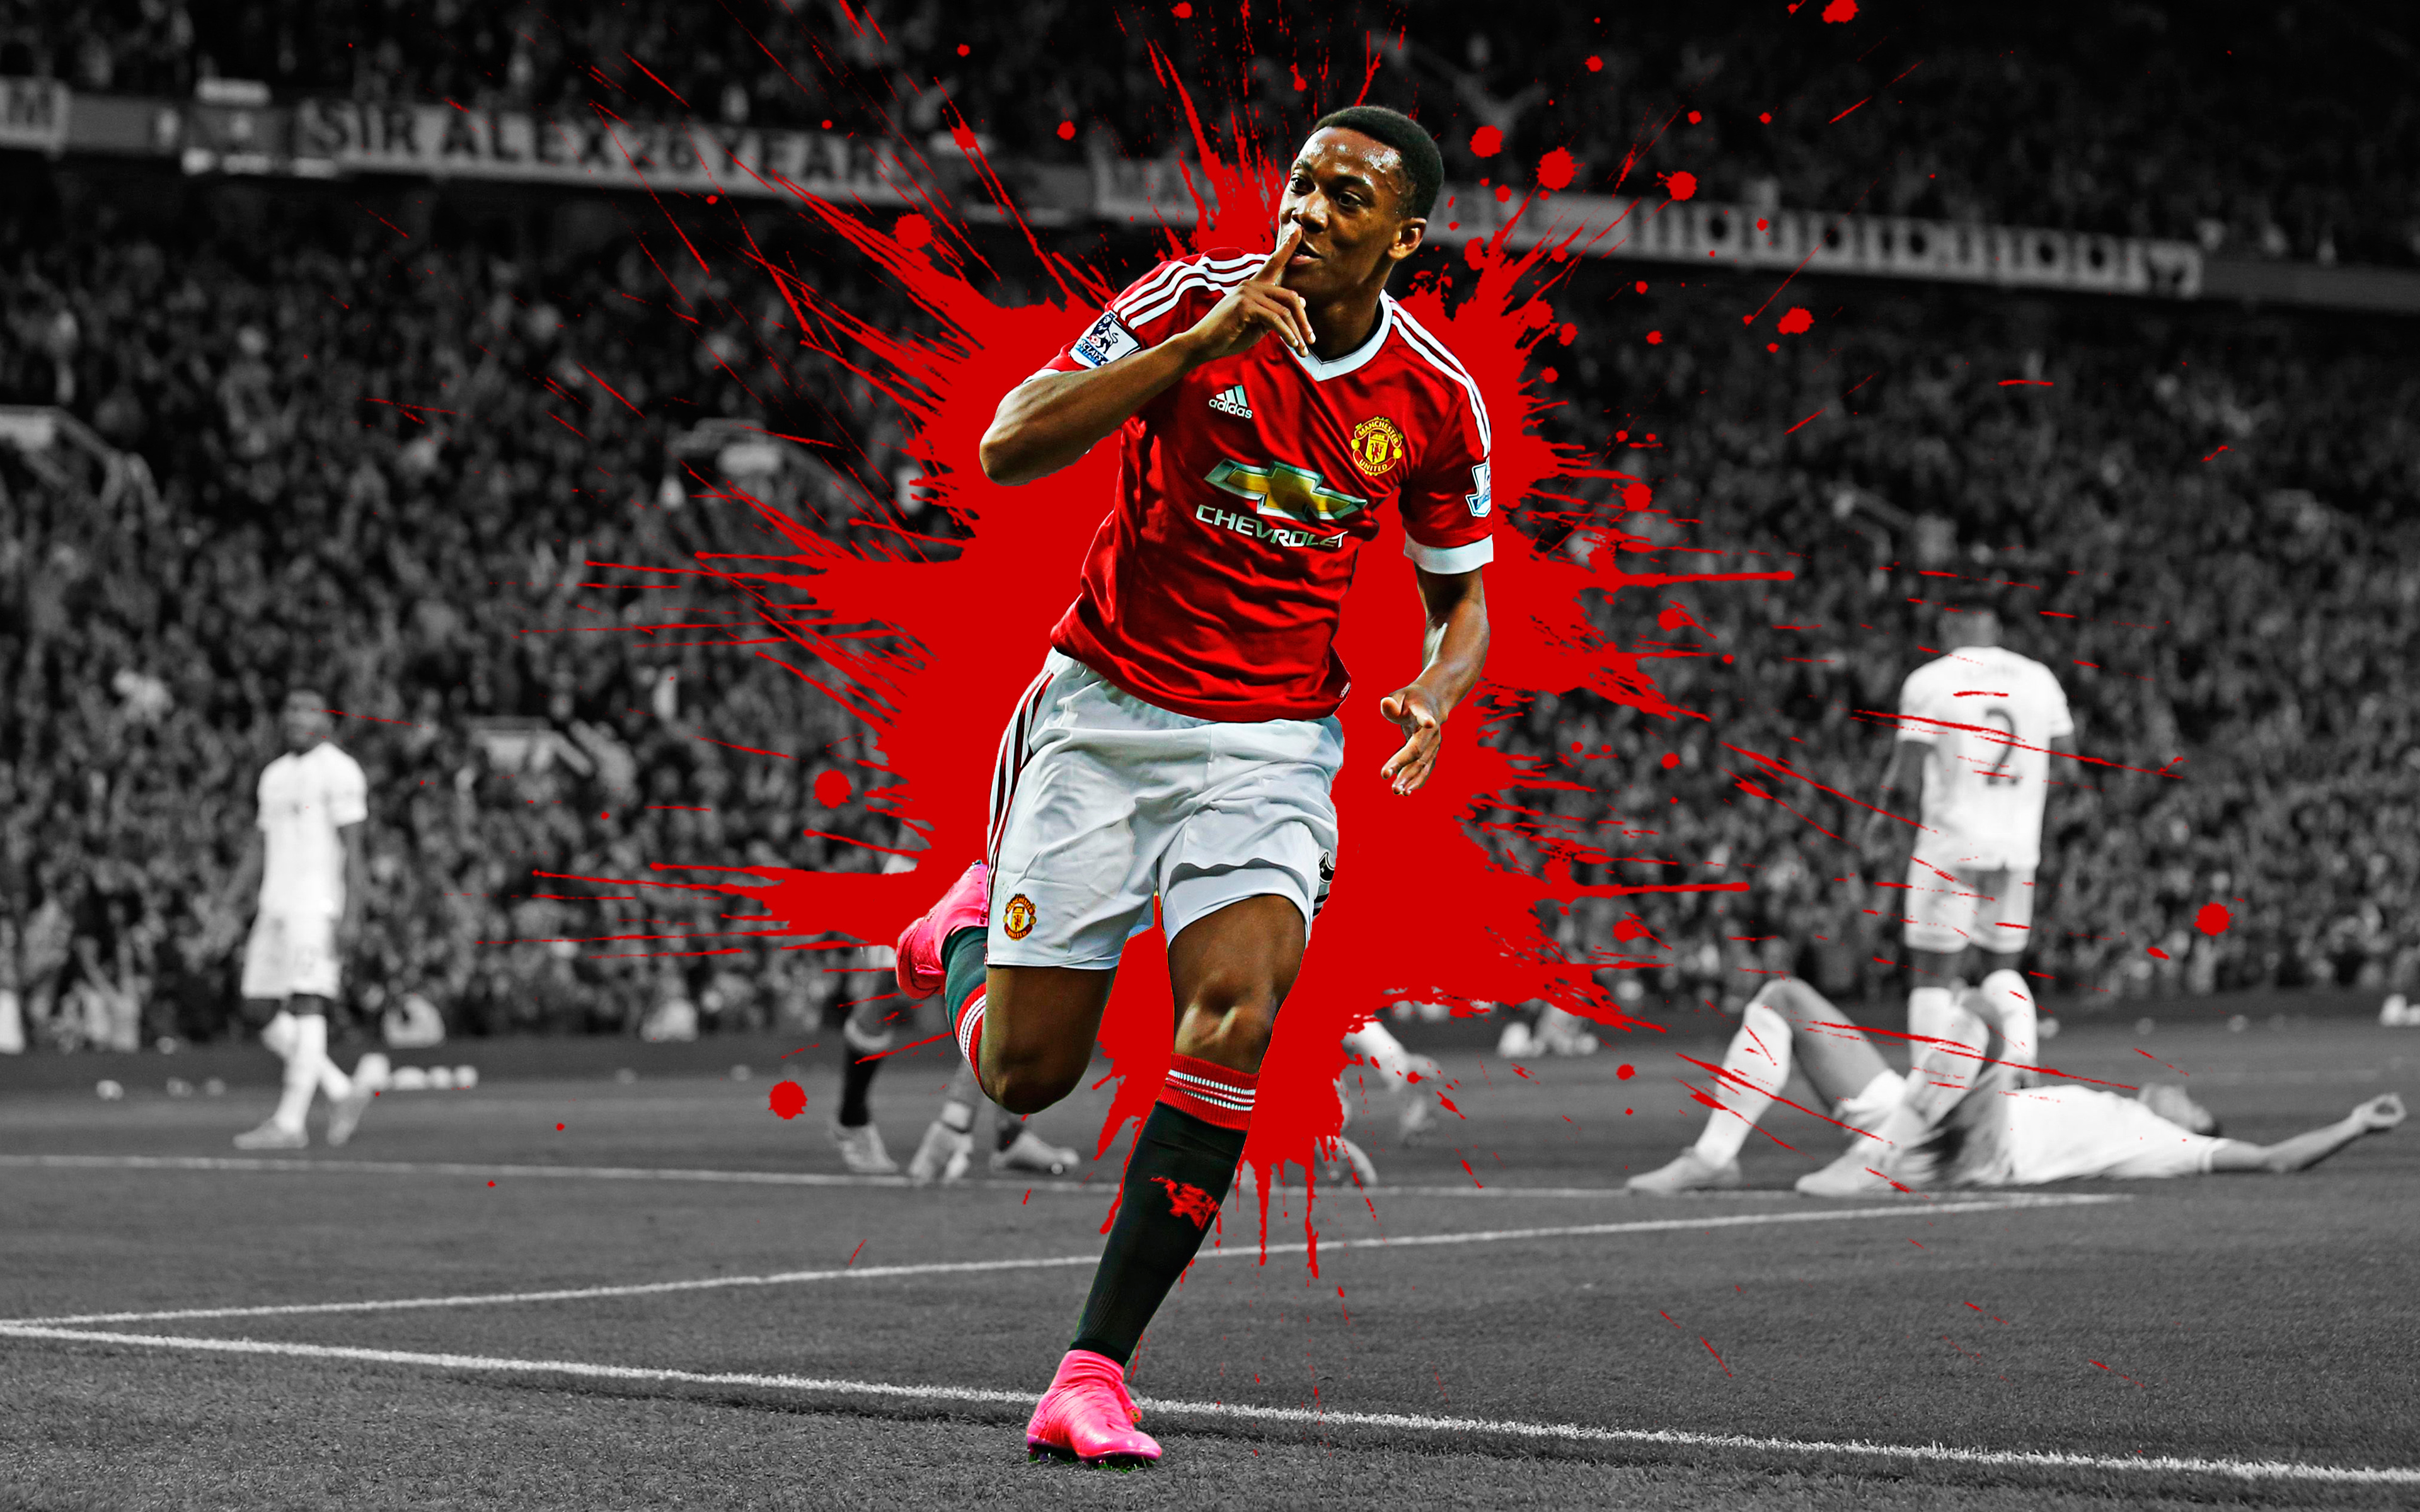 f7775c16c Anthony Joran Martial - Manchester United 4k Ultra HD Wallpaper ...